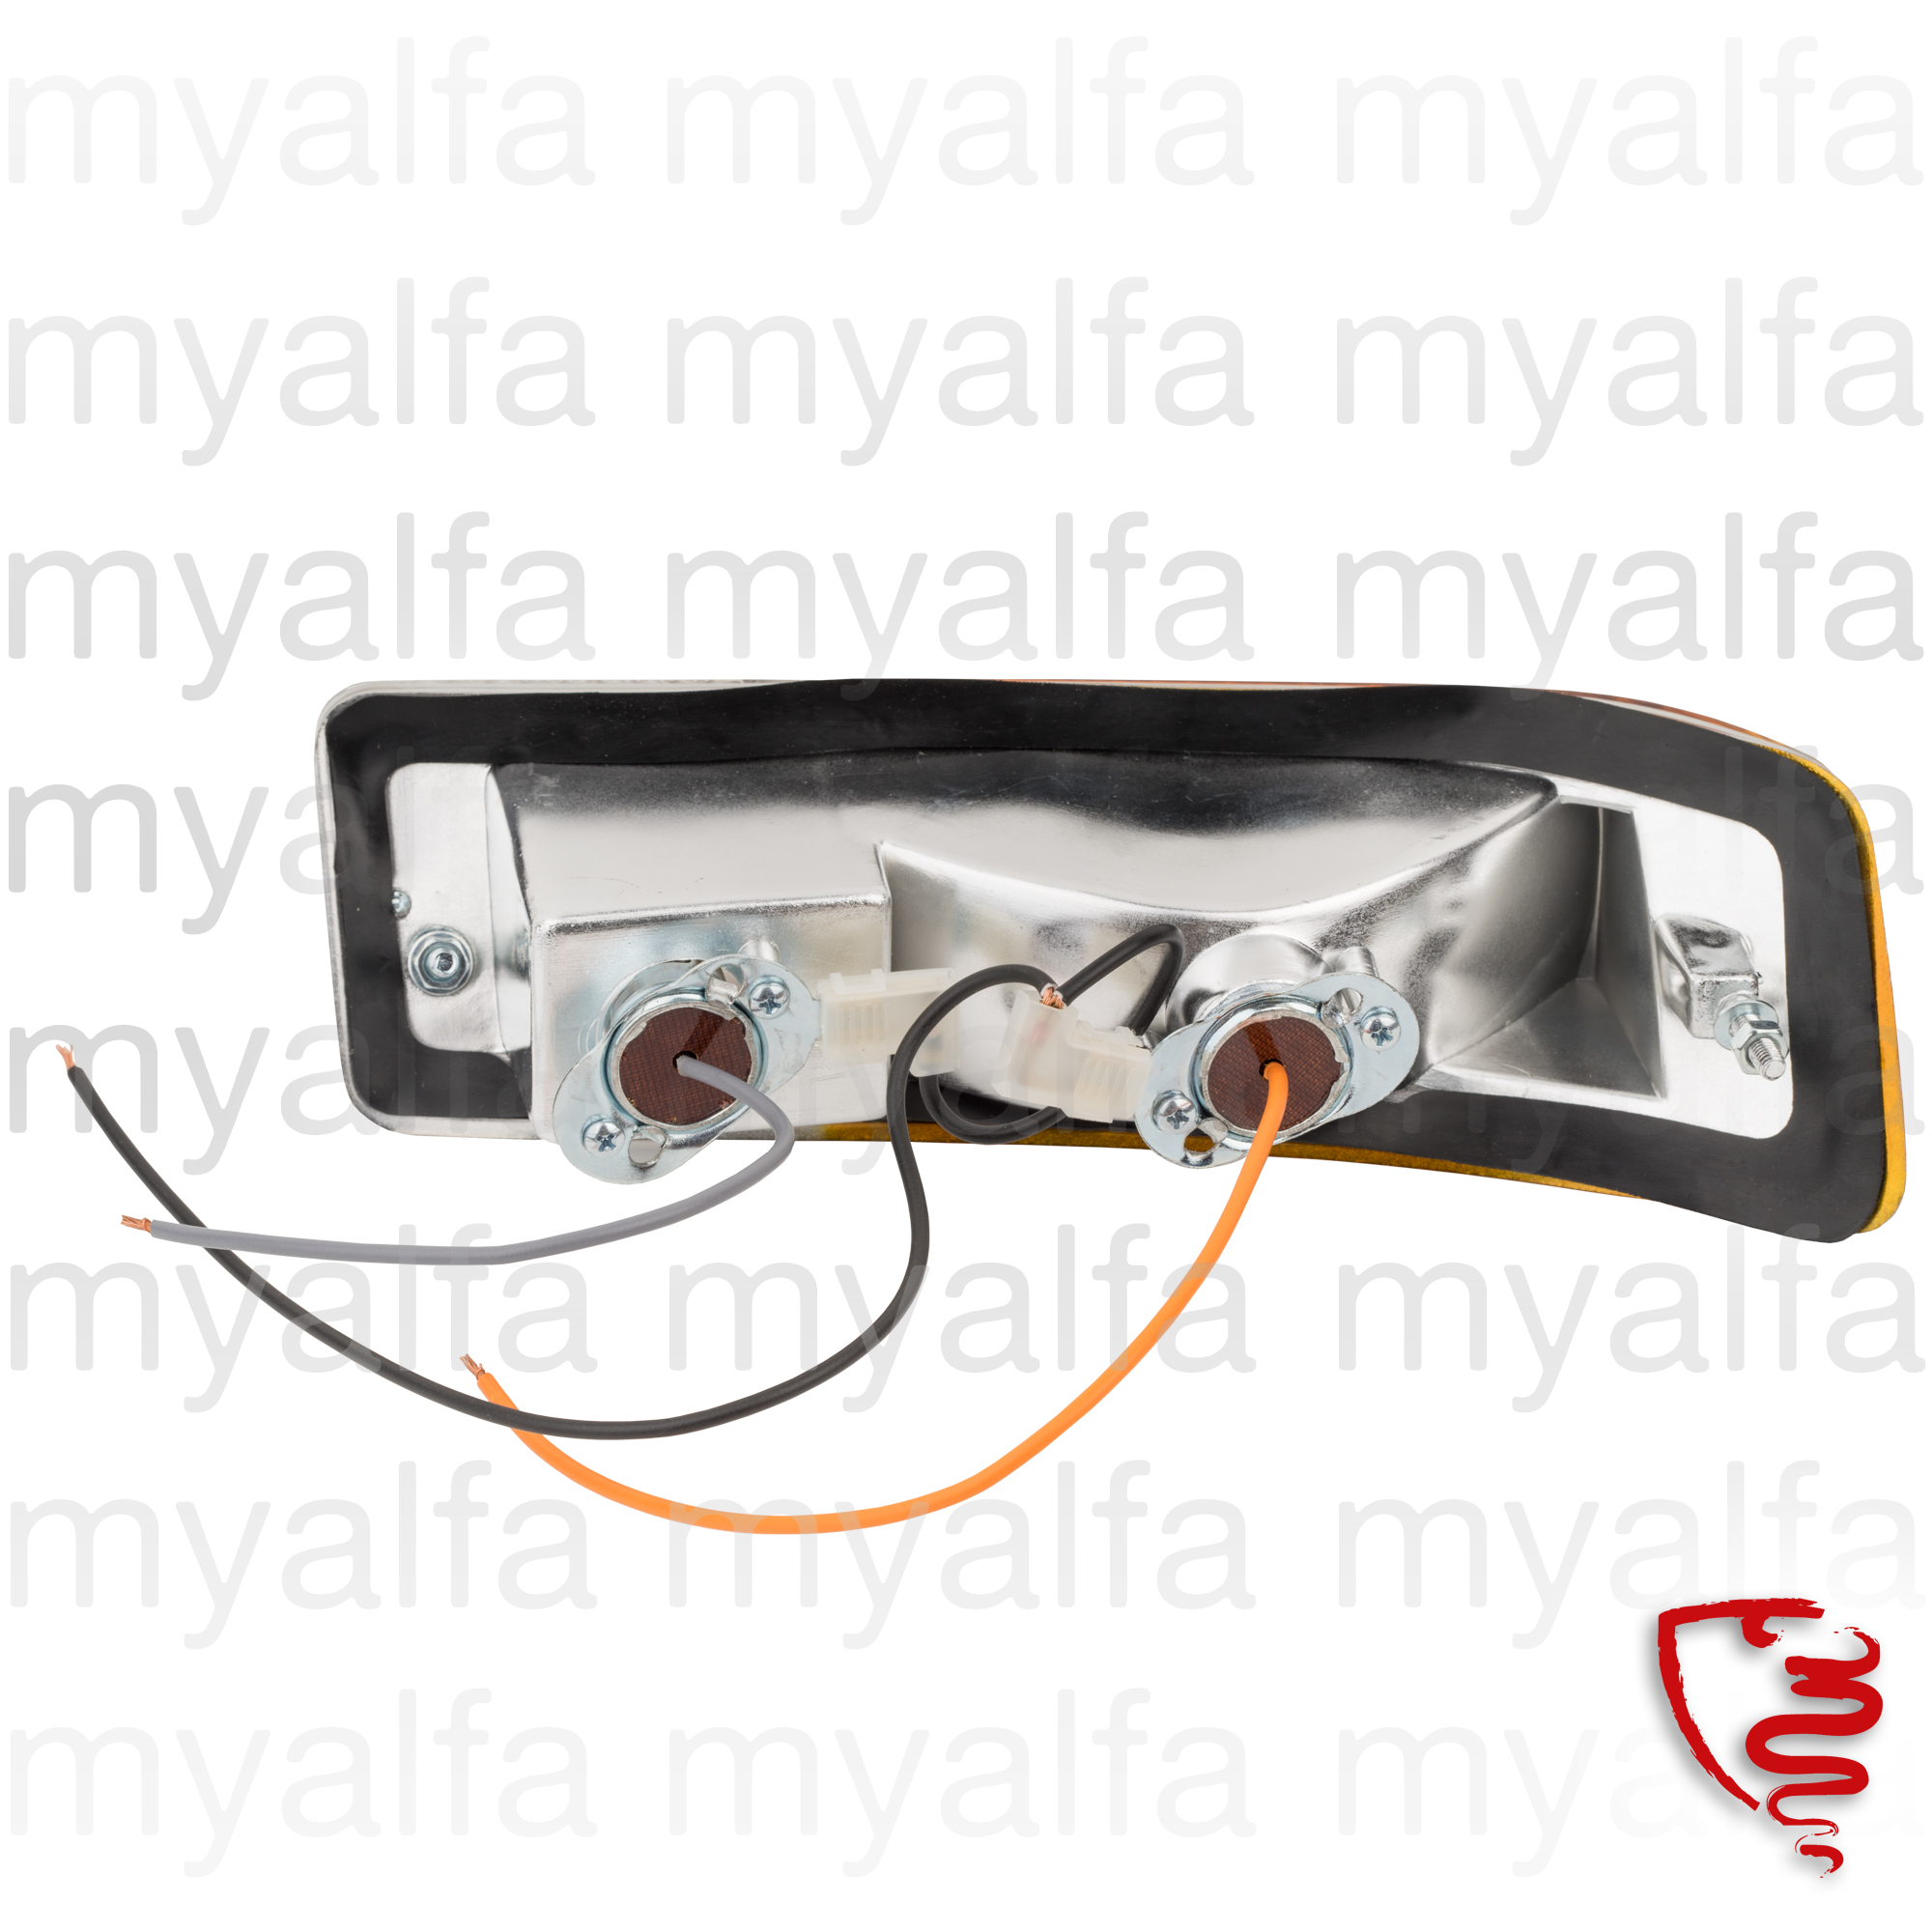 Beacon flashes and minimum front GT Bertone 2nd dt series for 105/115, Coupe, Body parts, Lighting, Indicators